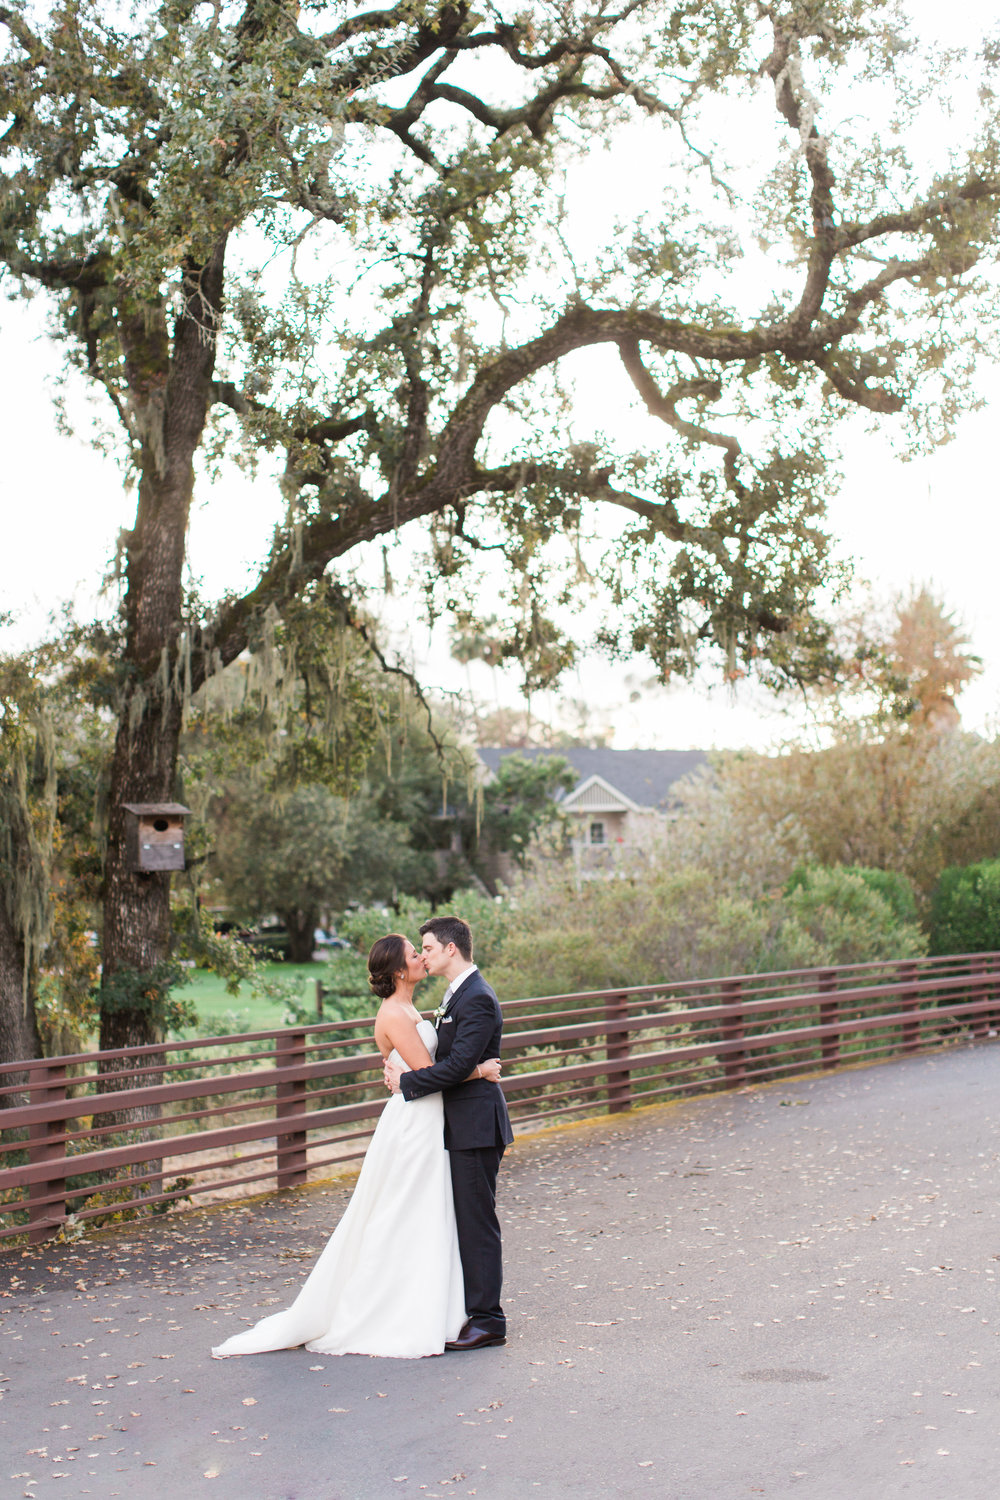 intimate-wedding-at-solage-calistoga-in-napa-91.jpg